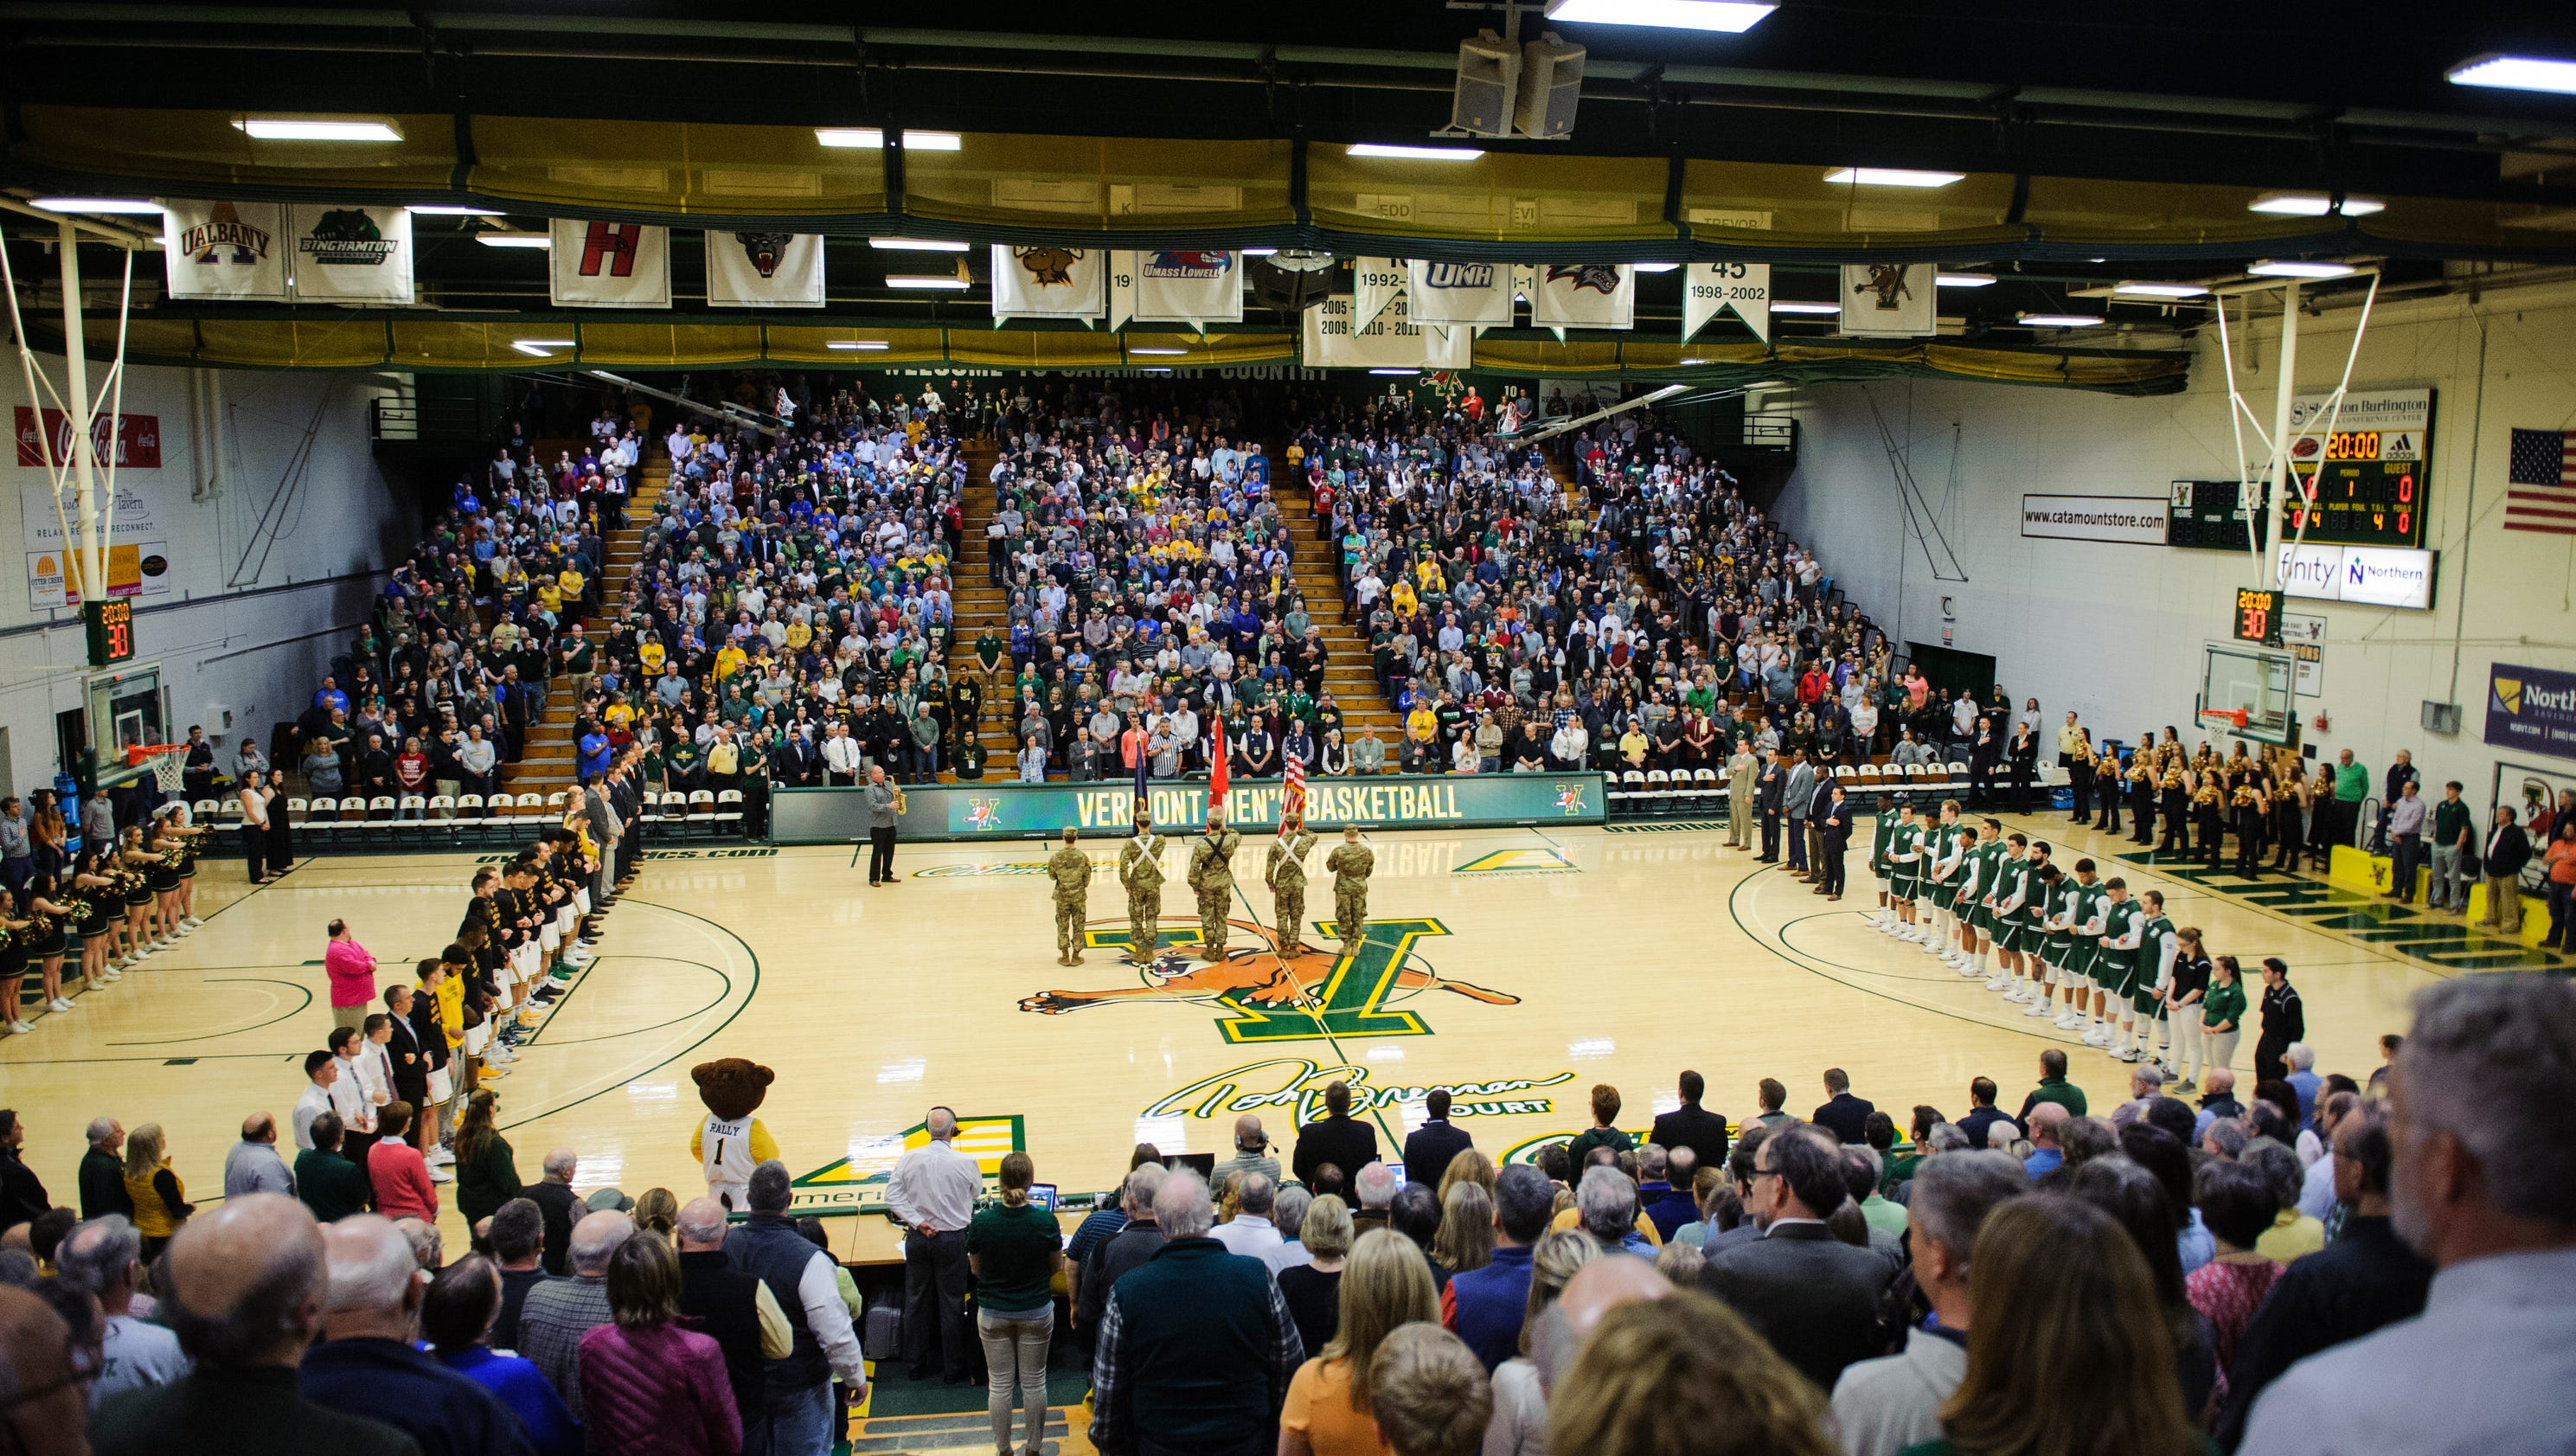 Playoff preview: 5 thoughts on UVM basketball's title hopes